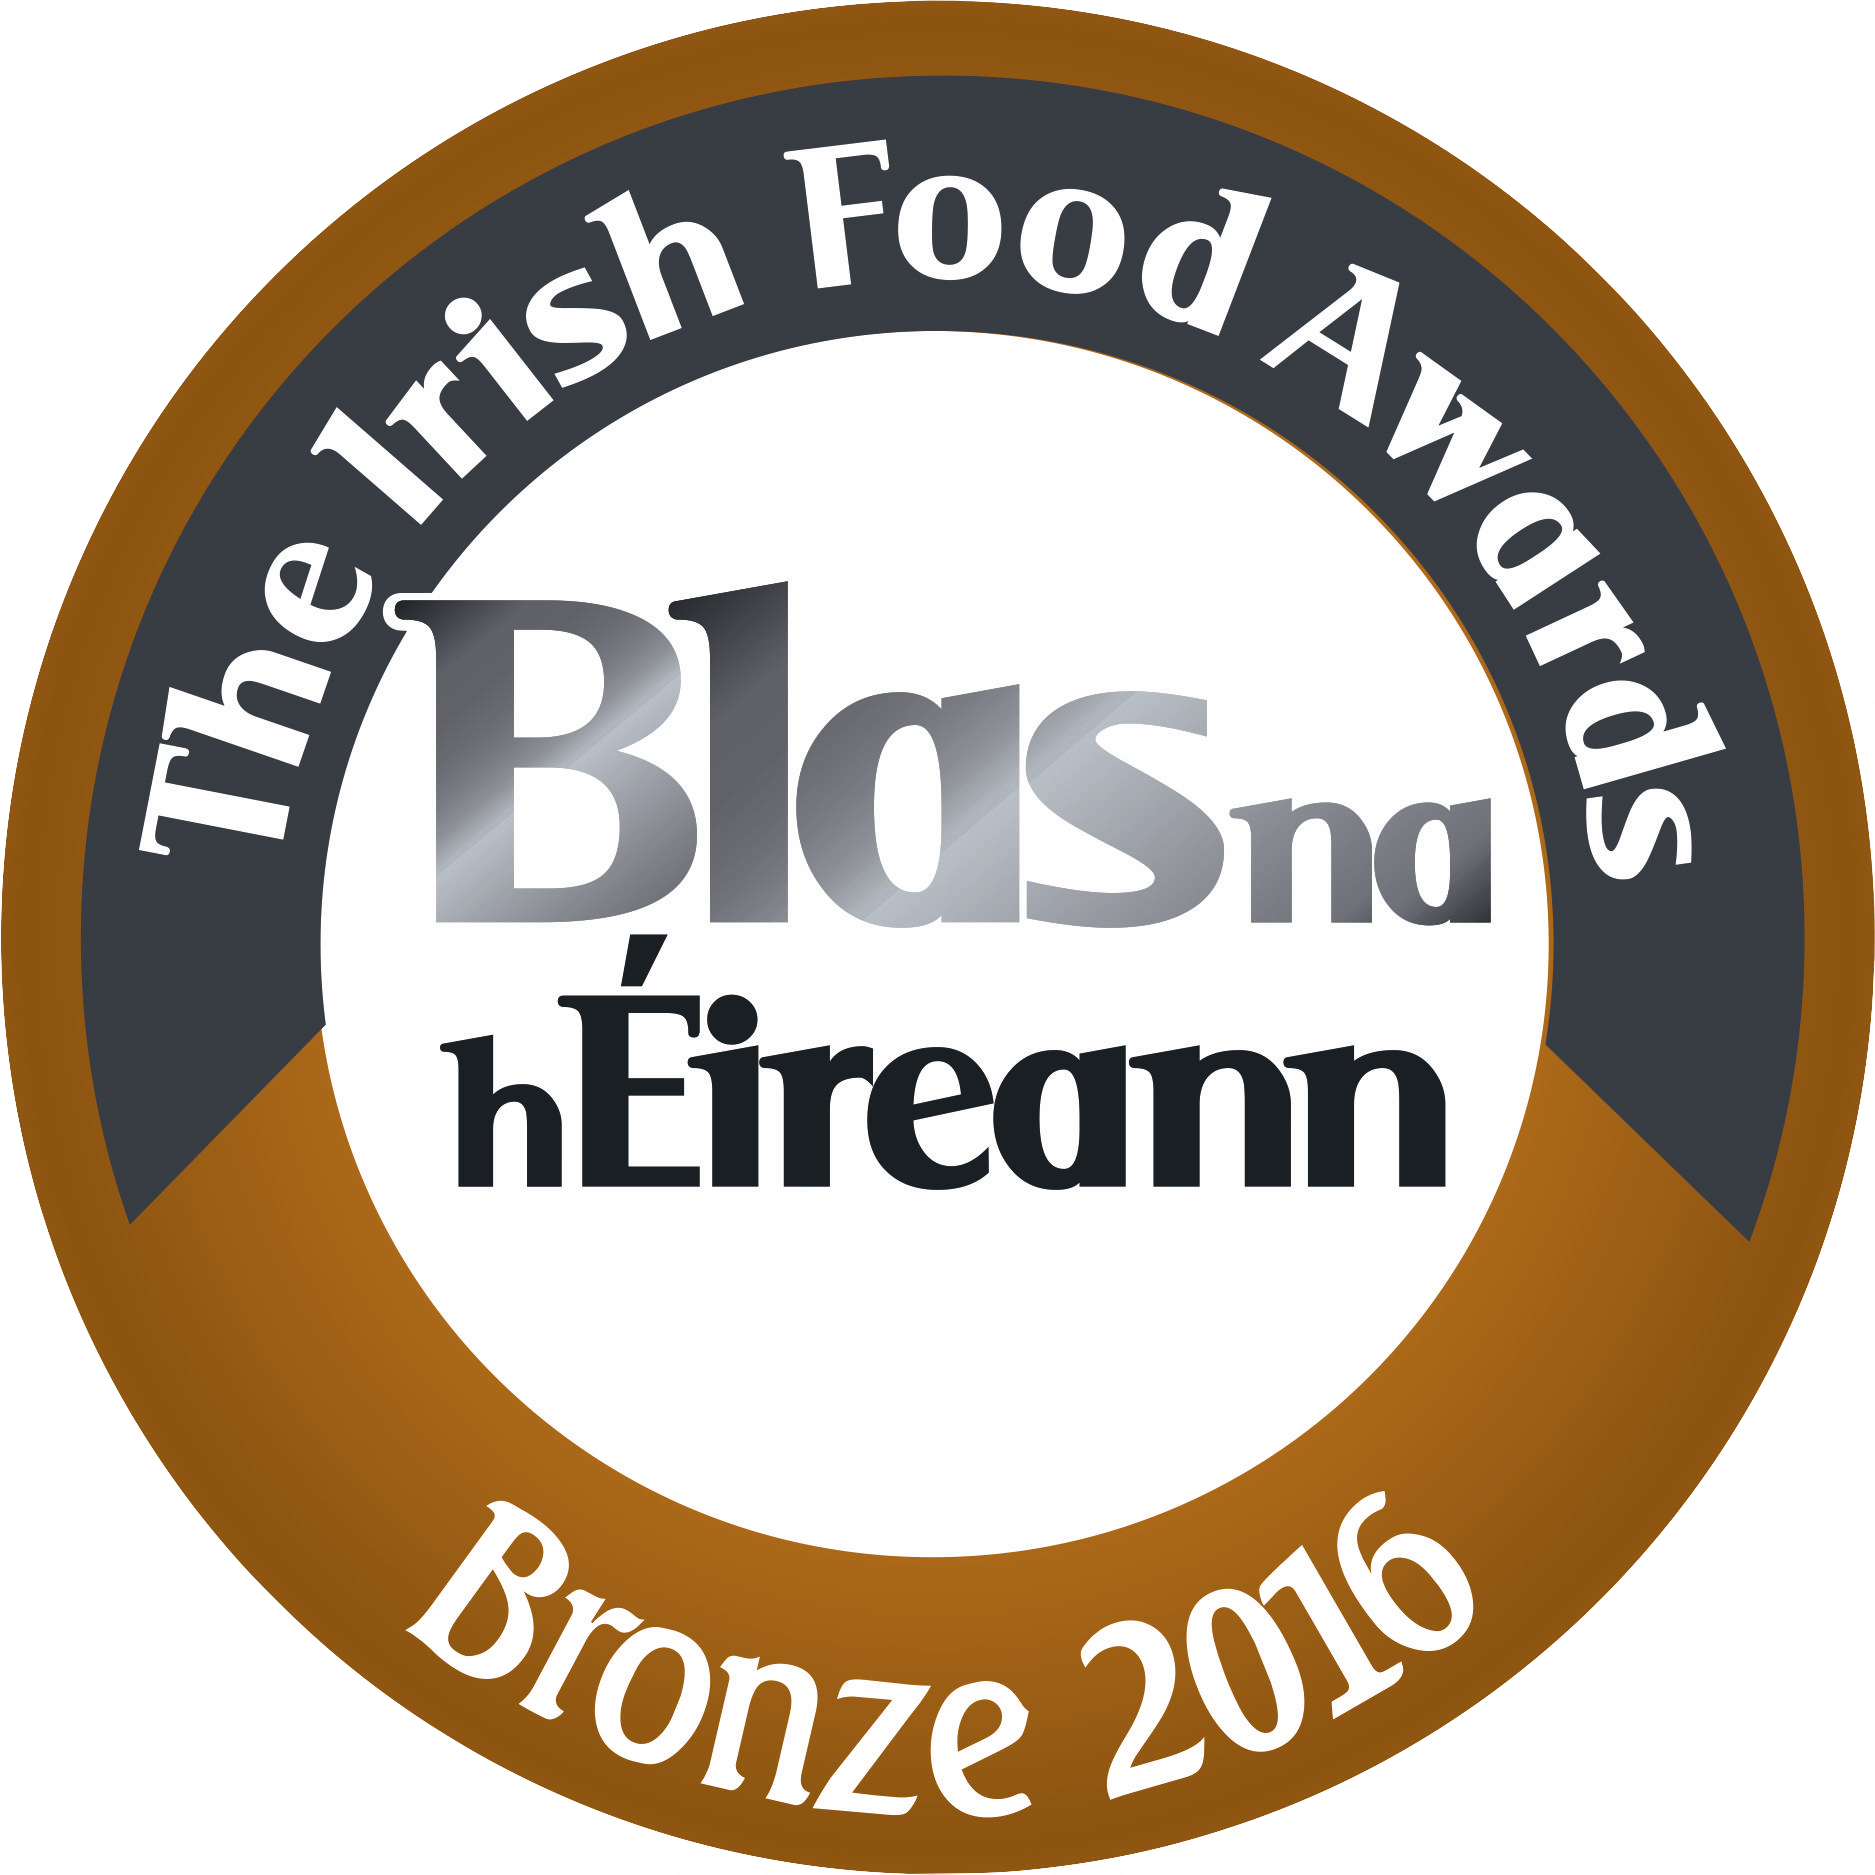 Bronze winner at the 2016 Irish Food Awards for our original Pesto Verde.